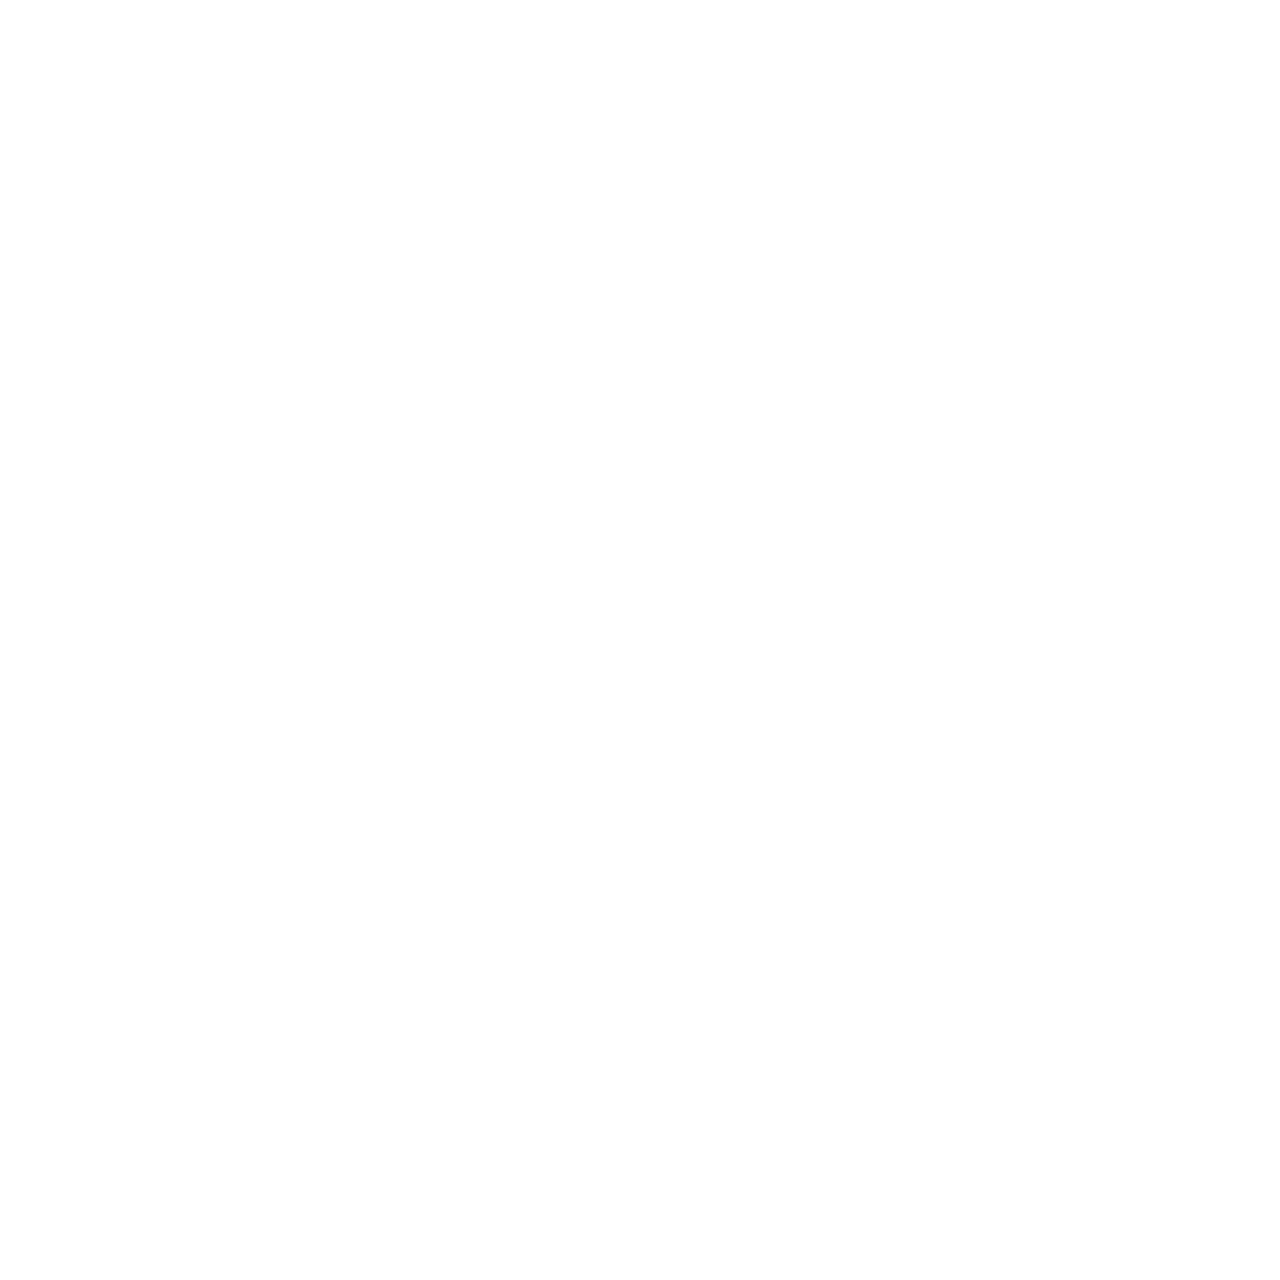 Destination Crossfit | Walla Walla